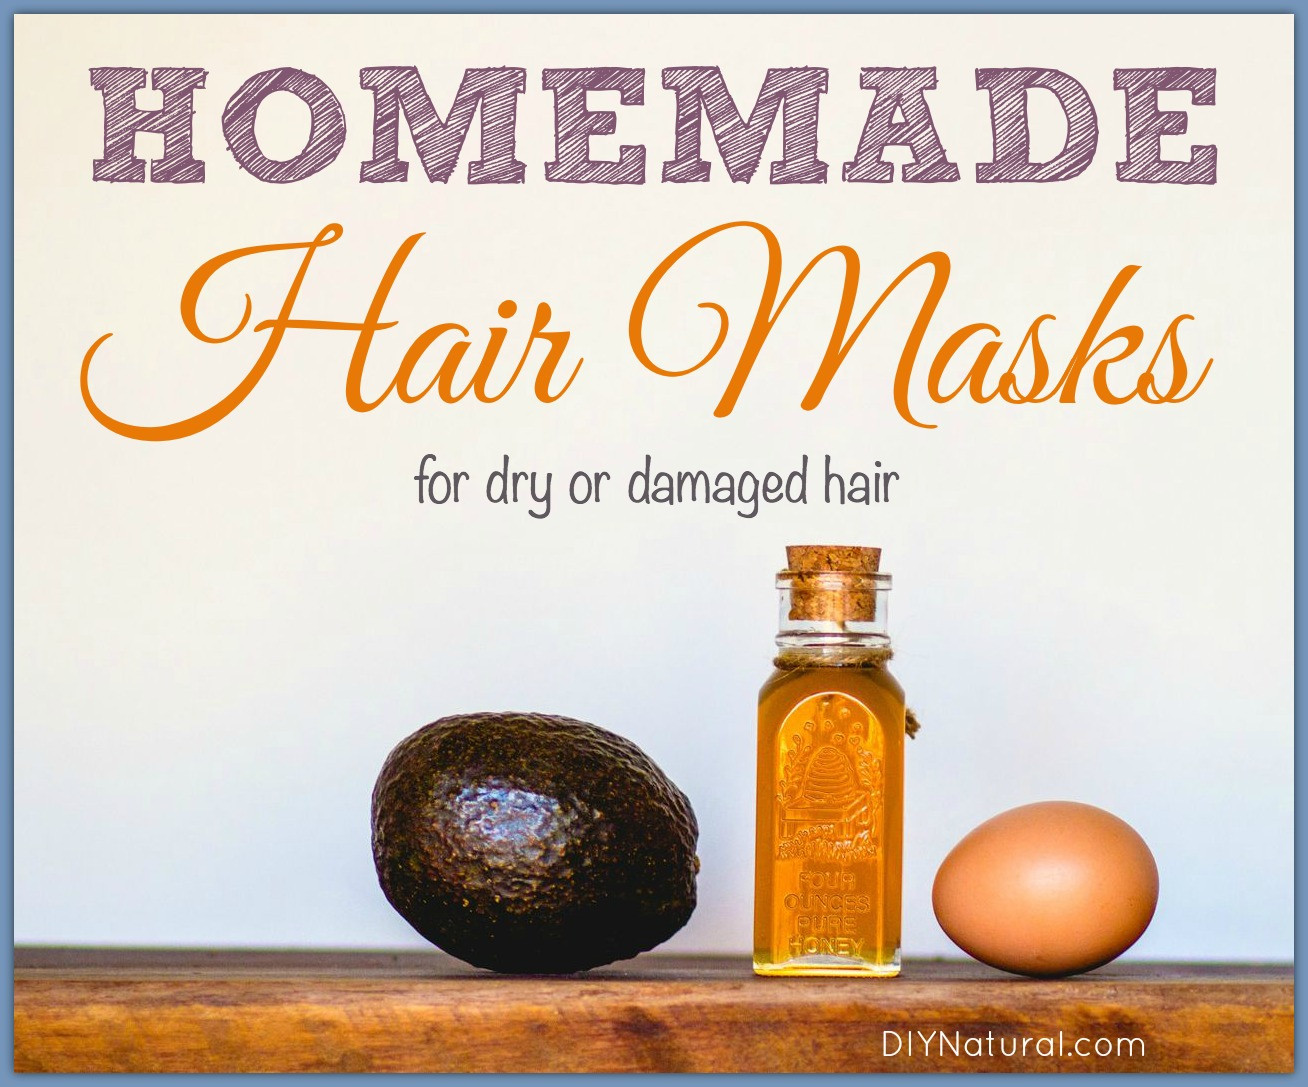 Best Hair Mask For Damaged Hair DIY  Homemade Hair Masks for Dry or Damaged Hair